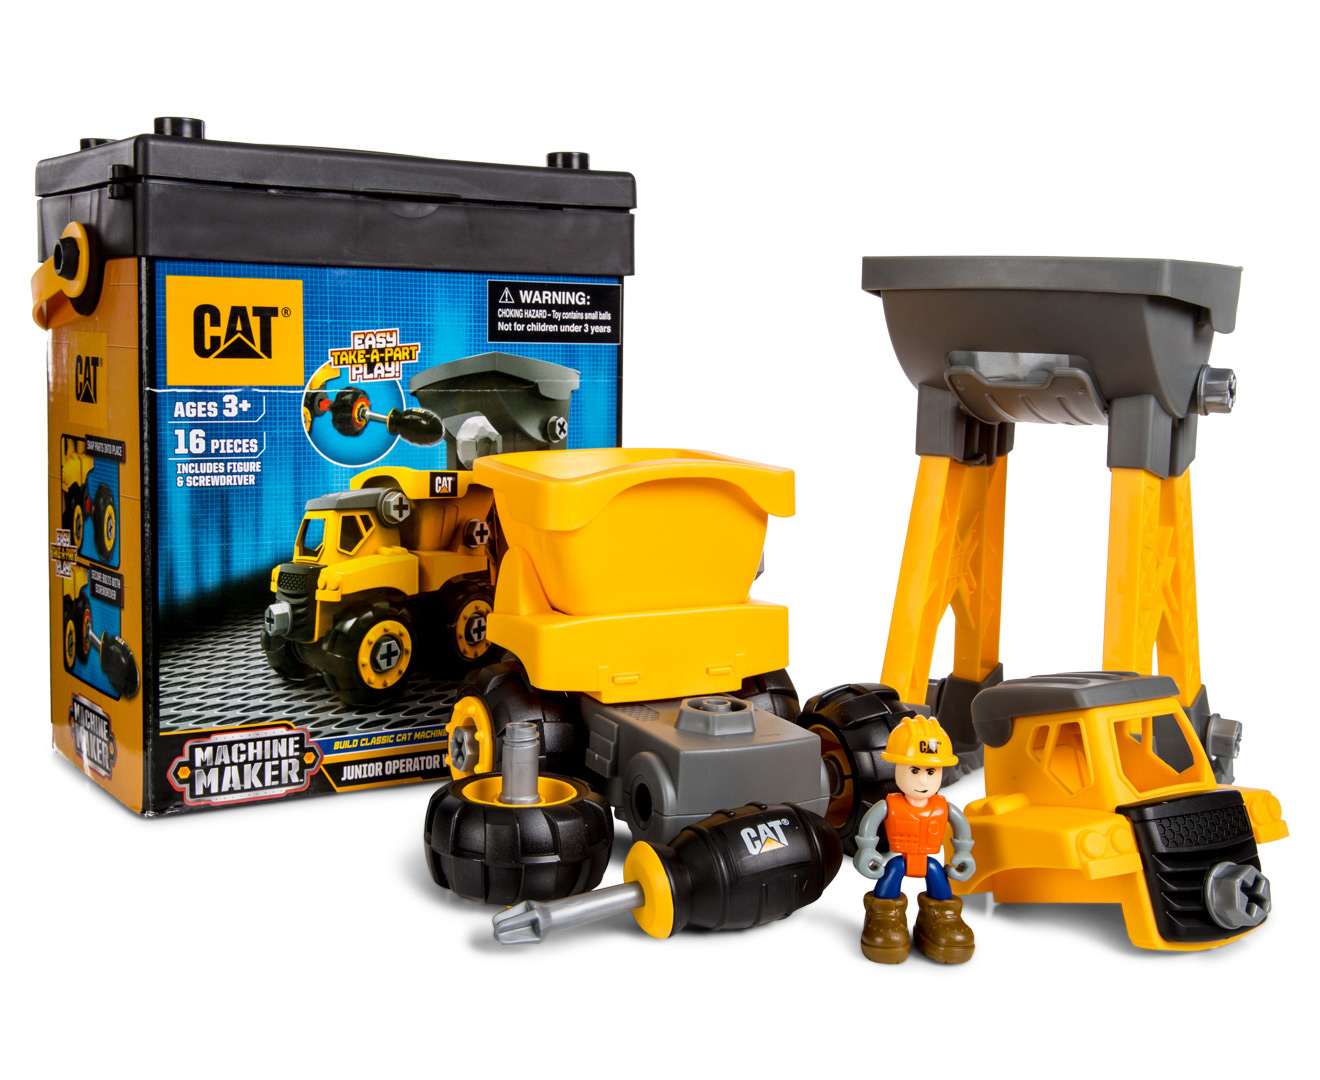 Construction Site Toys For Boys : Catchoftheday cat construction junior operator